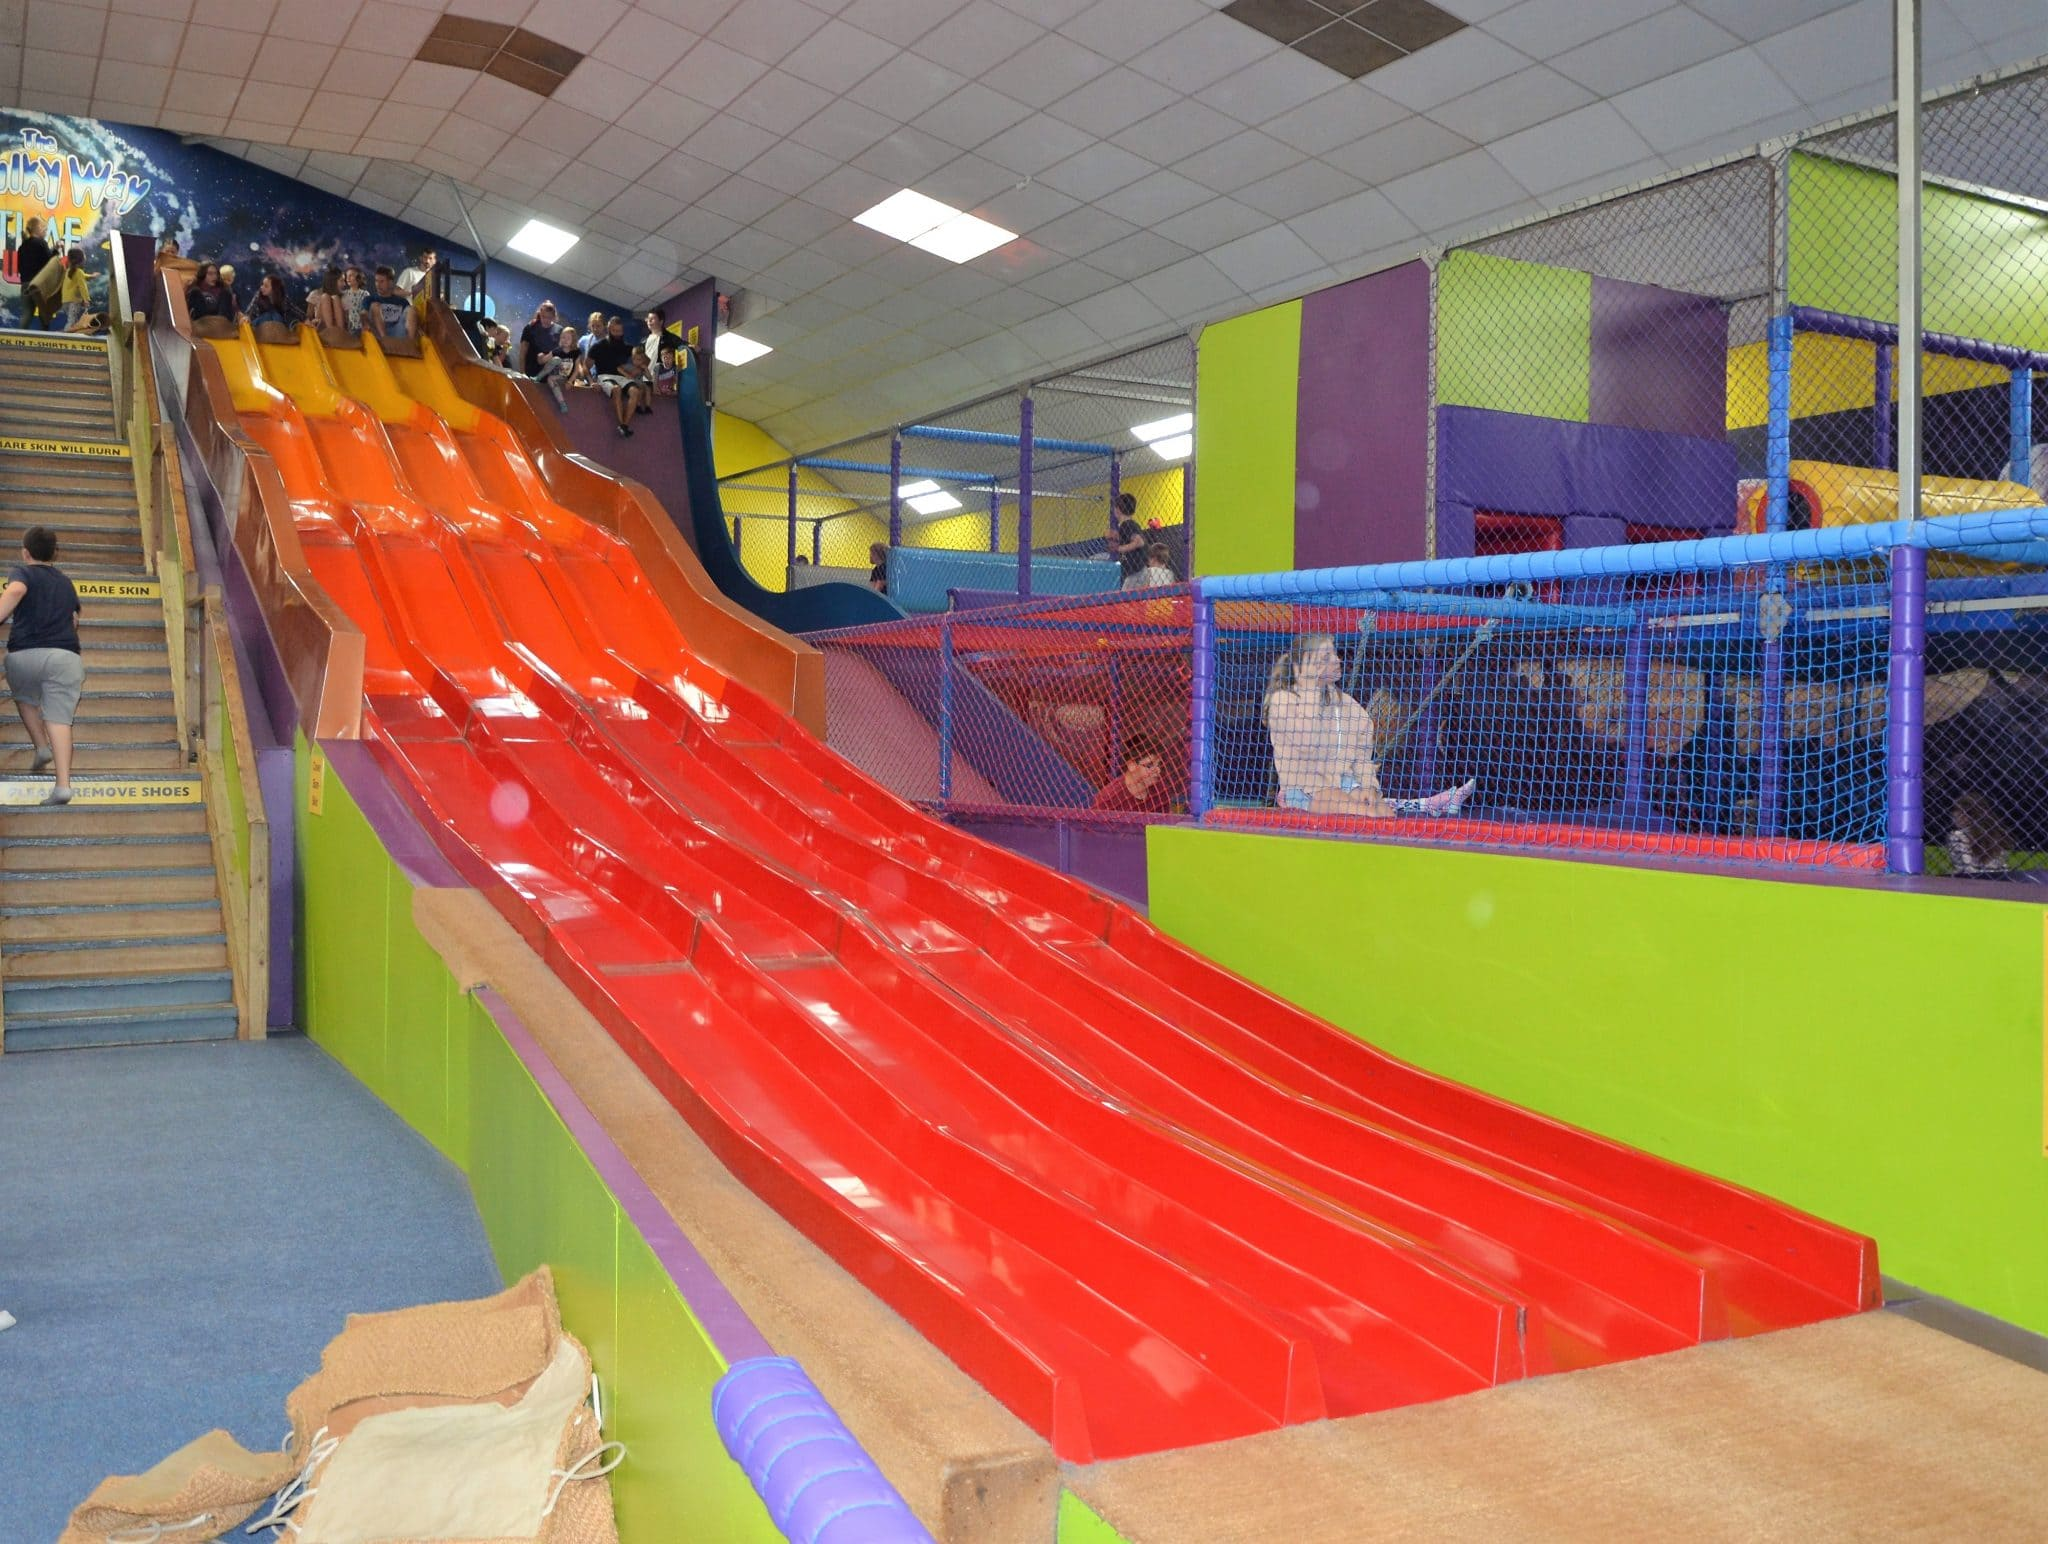 Time warp indoor play area